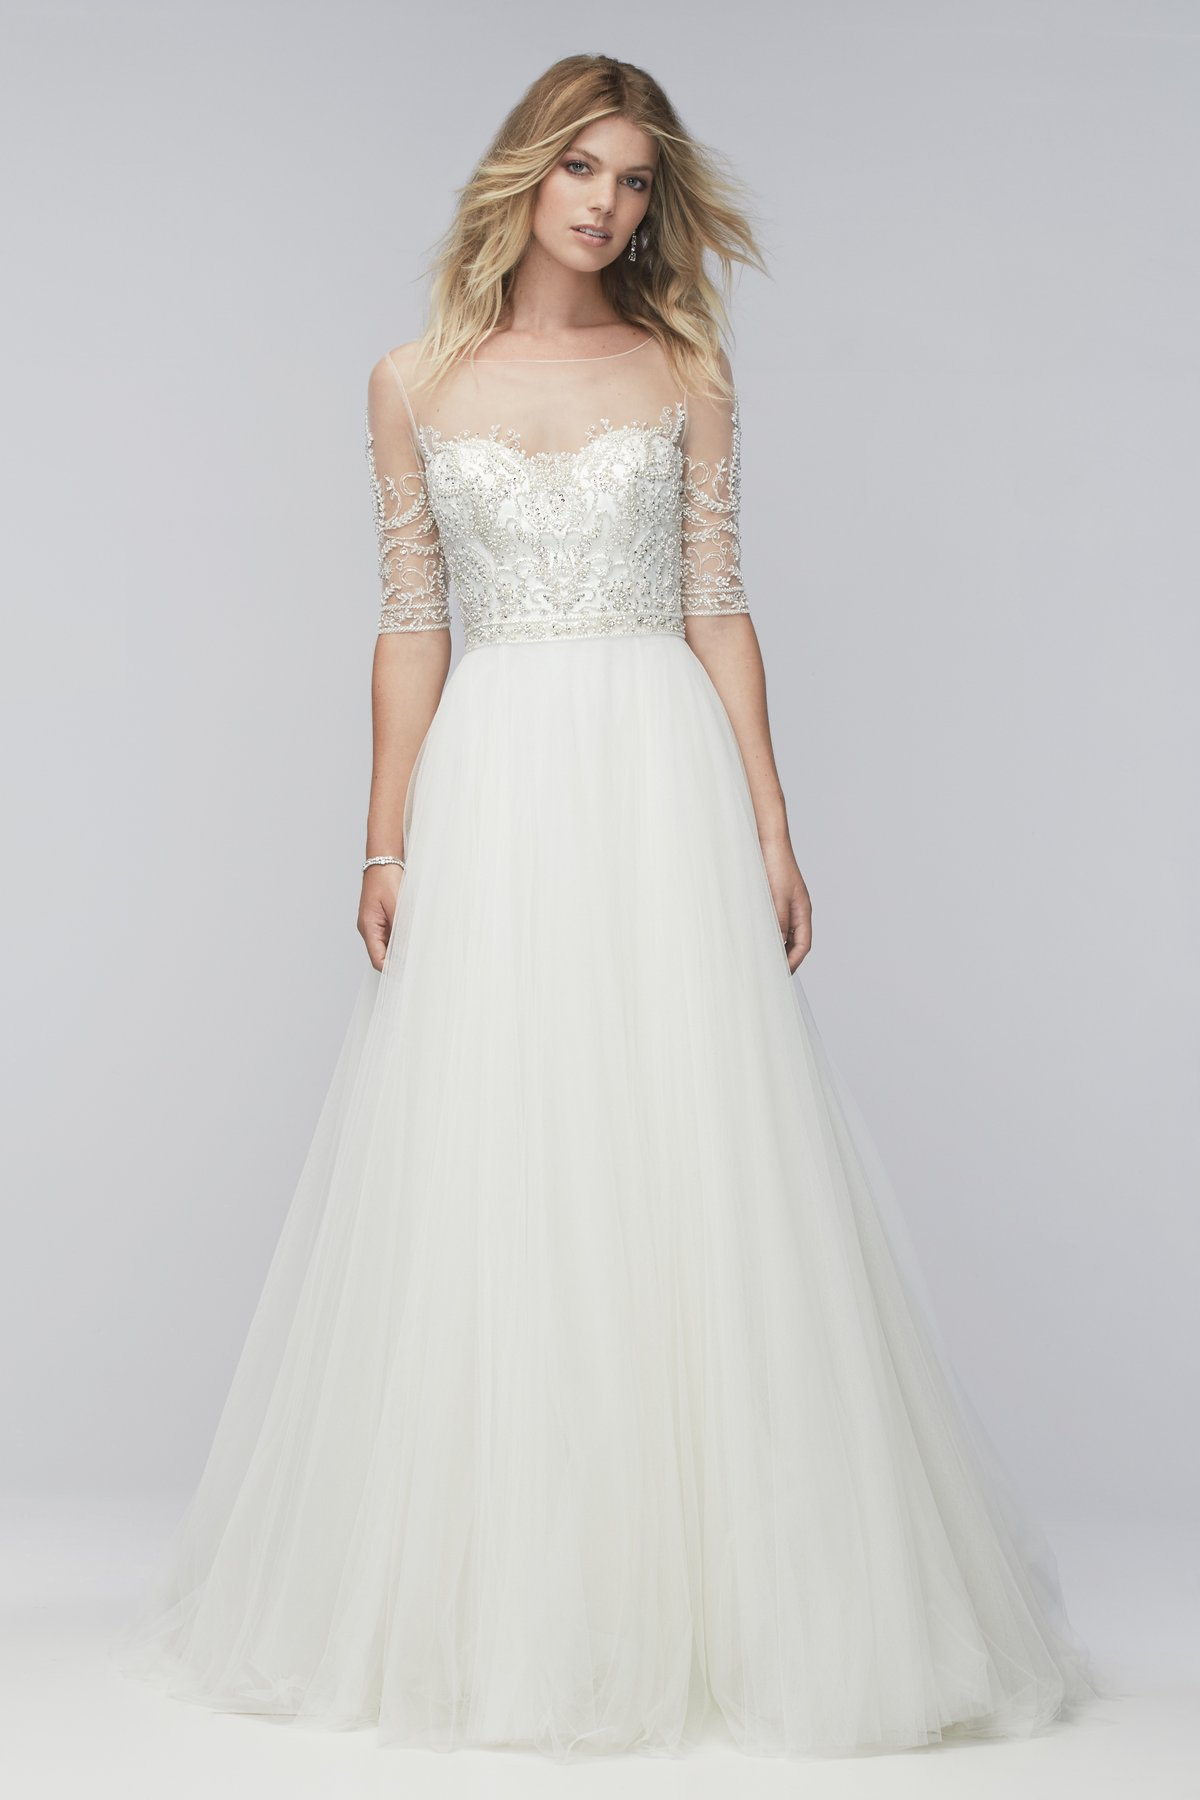 Lori G Wedding Dresses : Nelly by wtoo wedding dress from lori g bridal derby